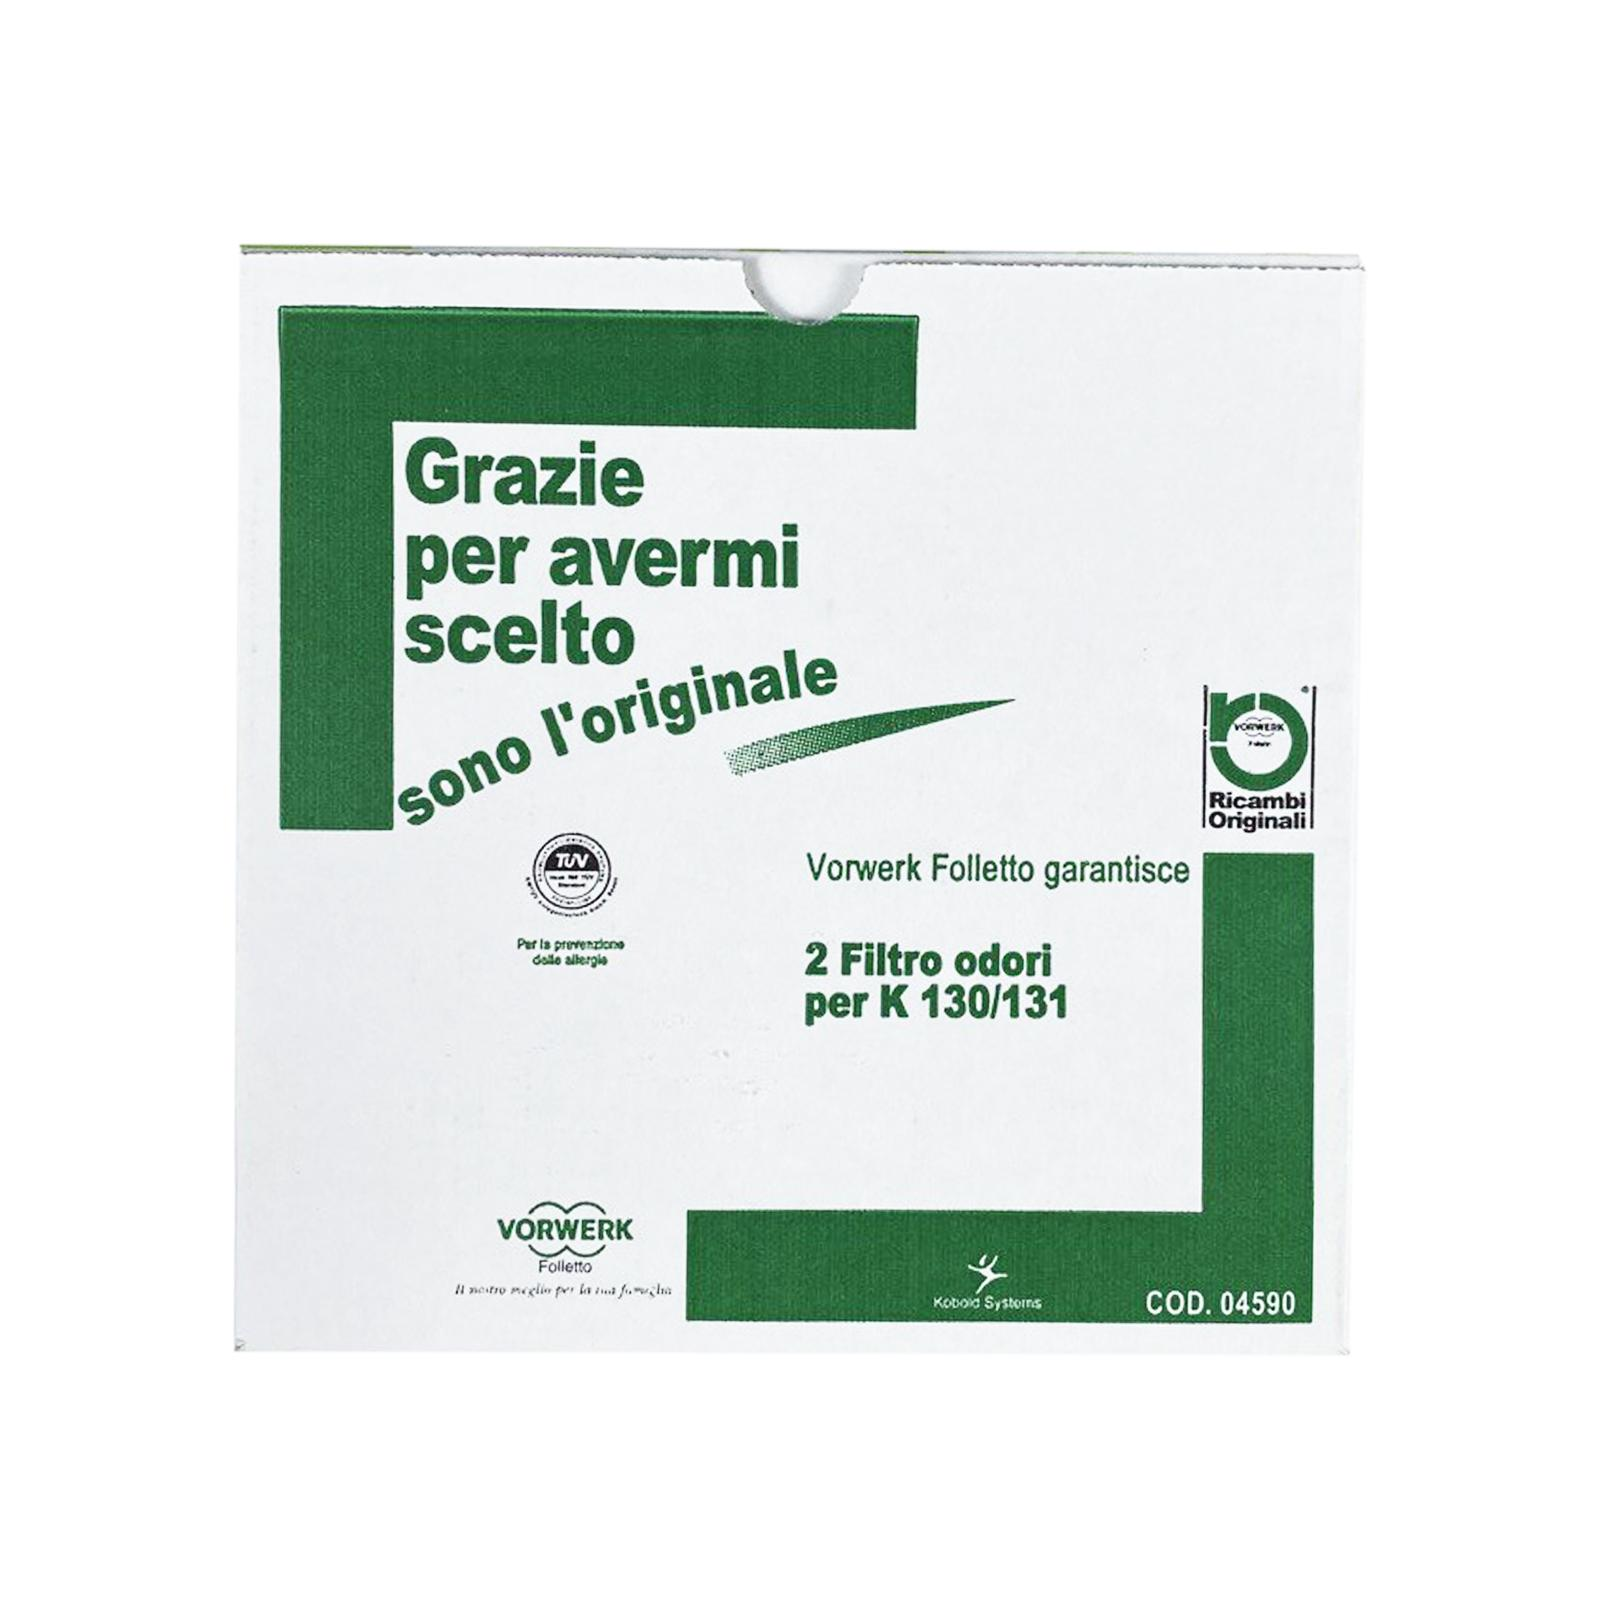 vorwerk filtro folletto kobold 130 folletto vk130 vk 131 2pz originali